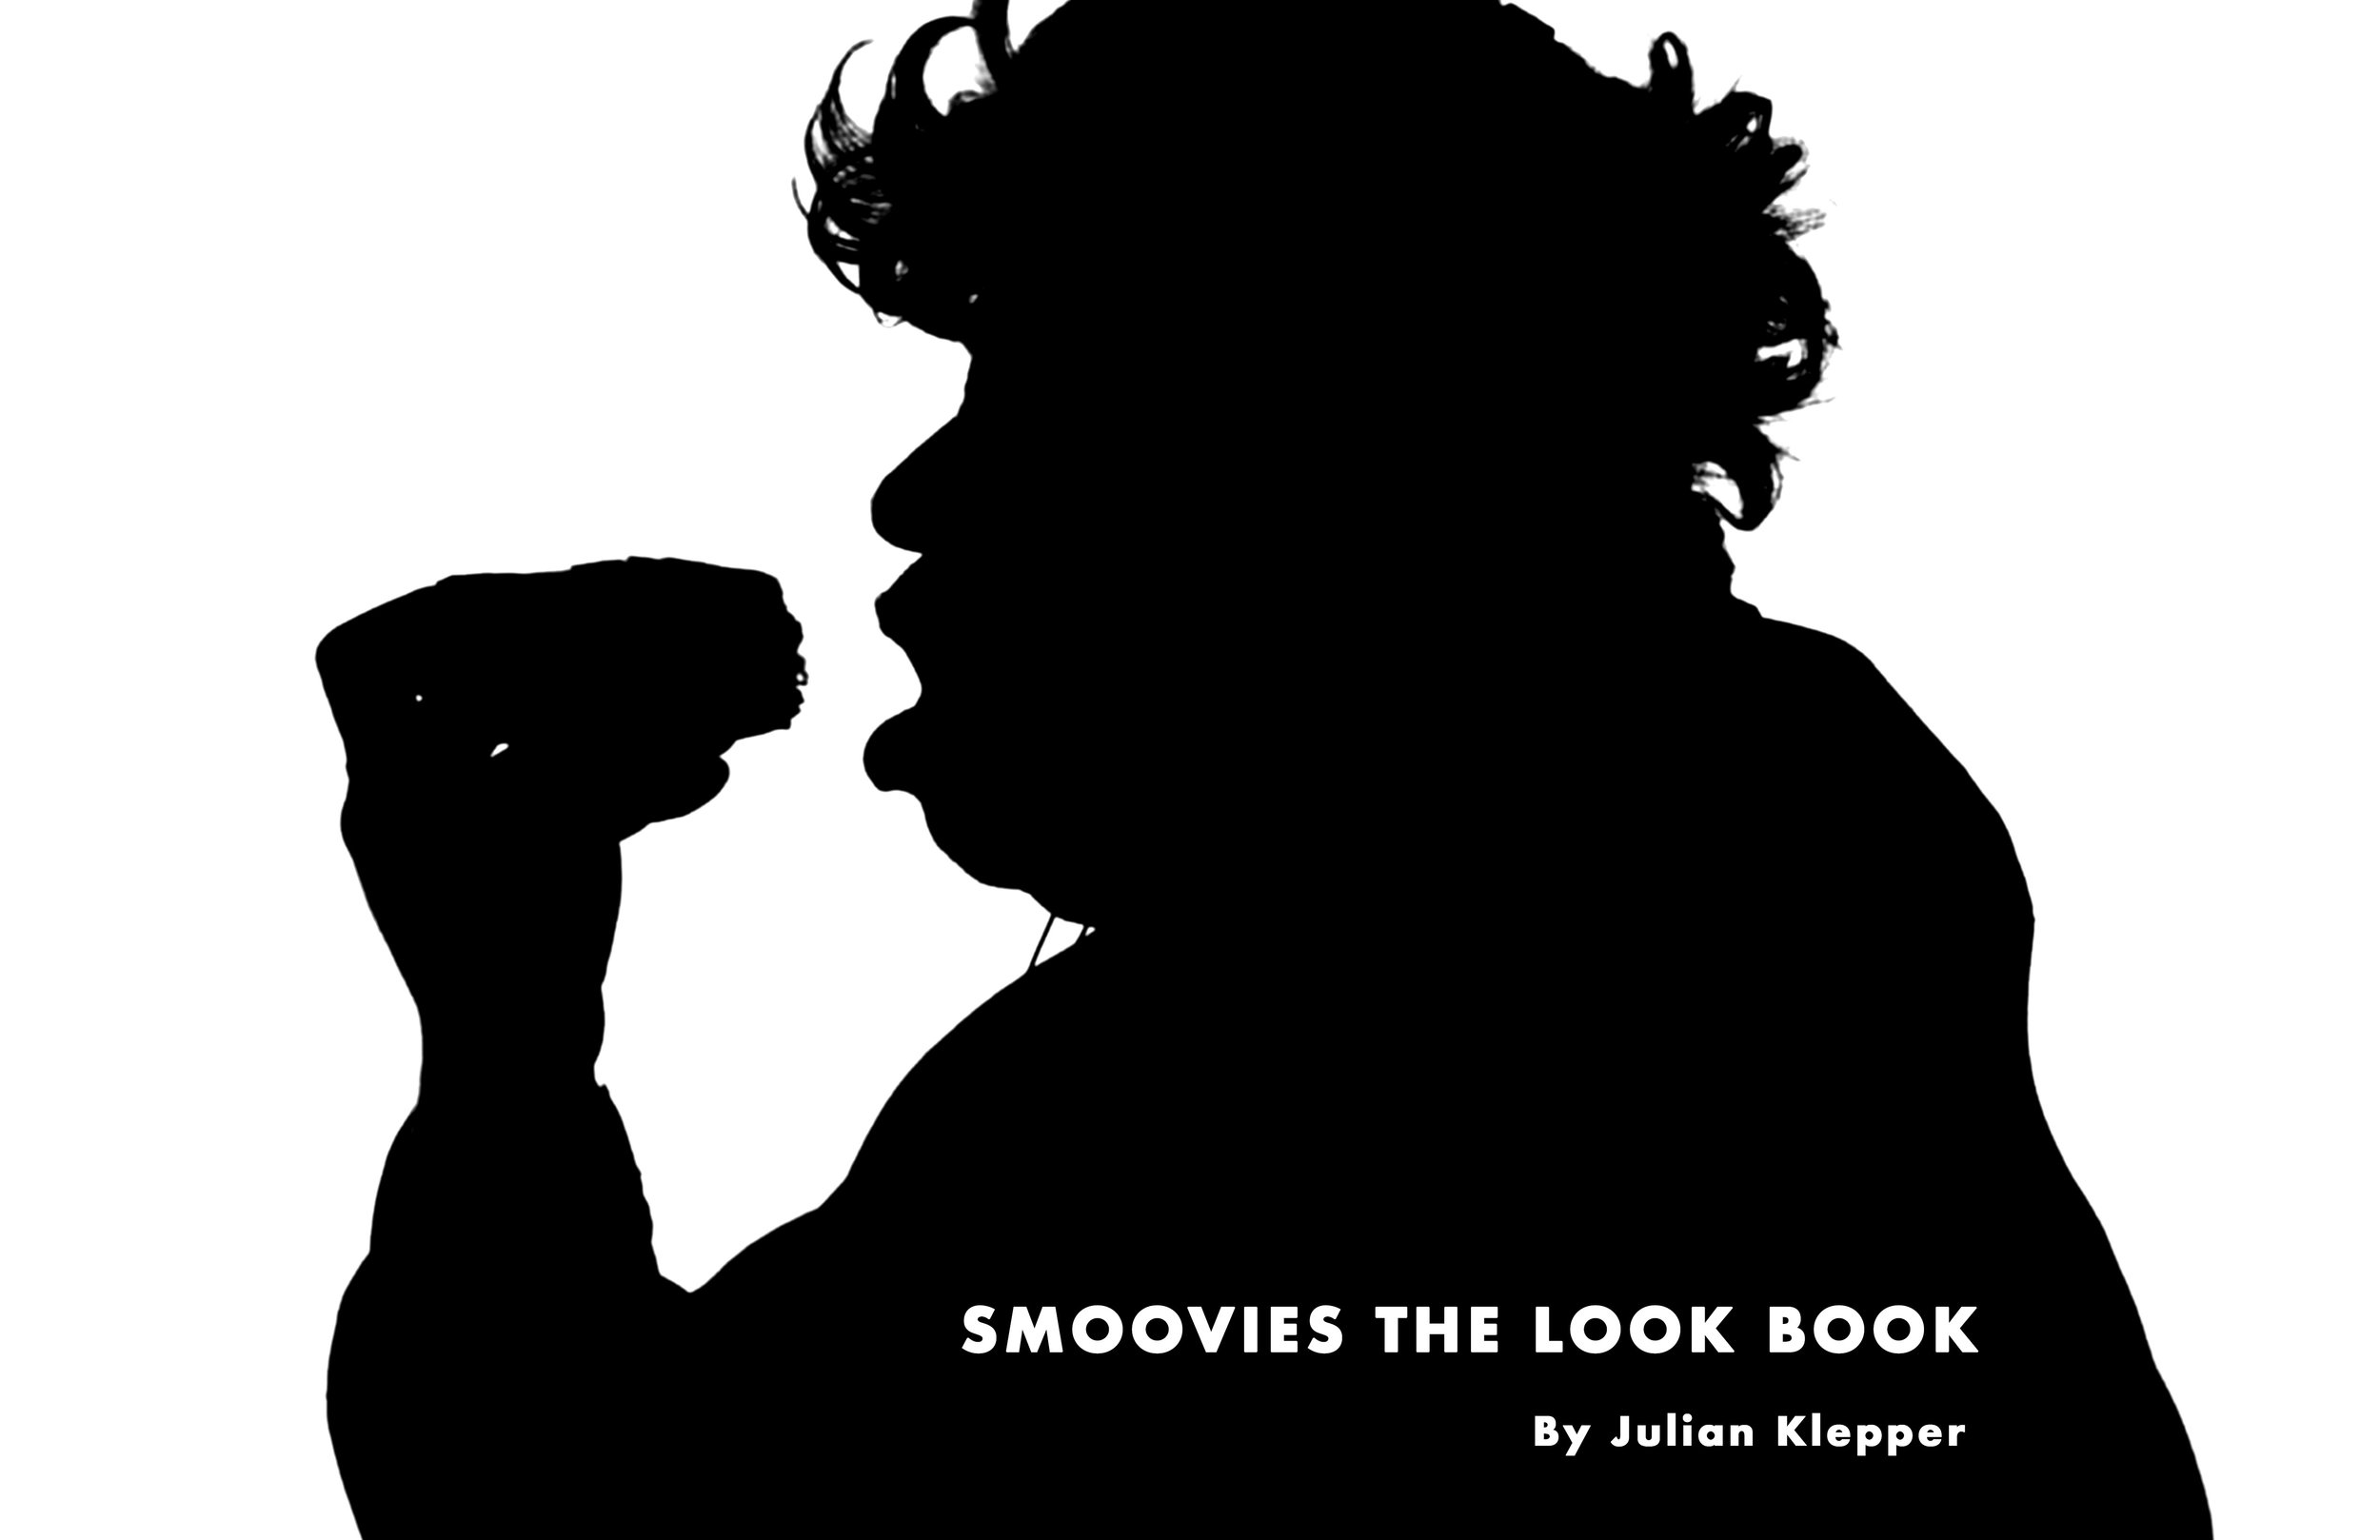 1 Smoovies Look Book5.jpeg